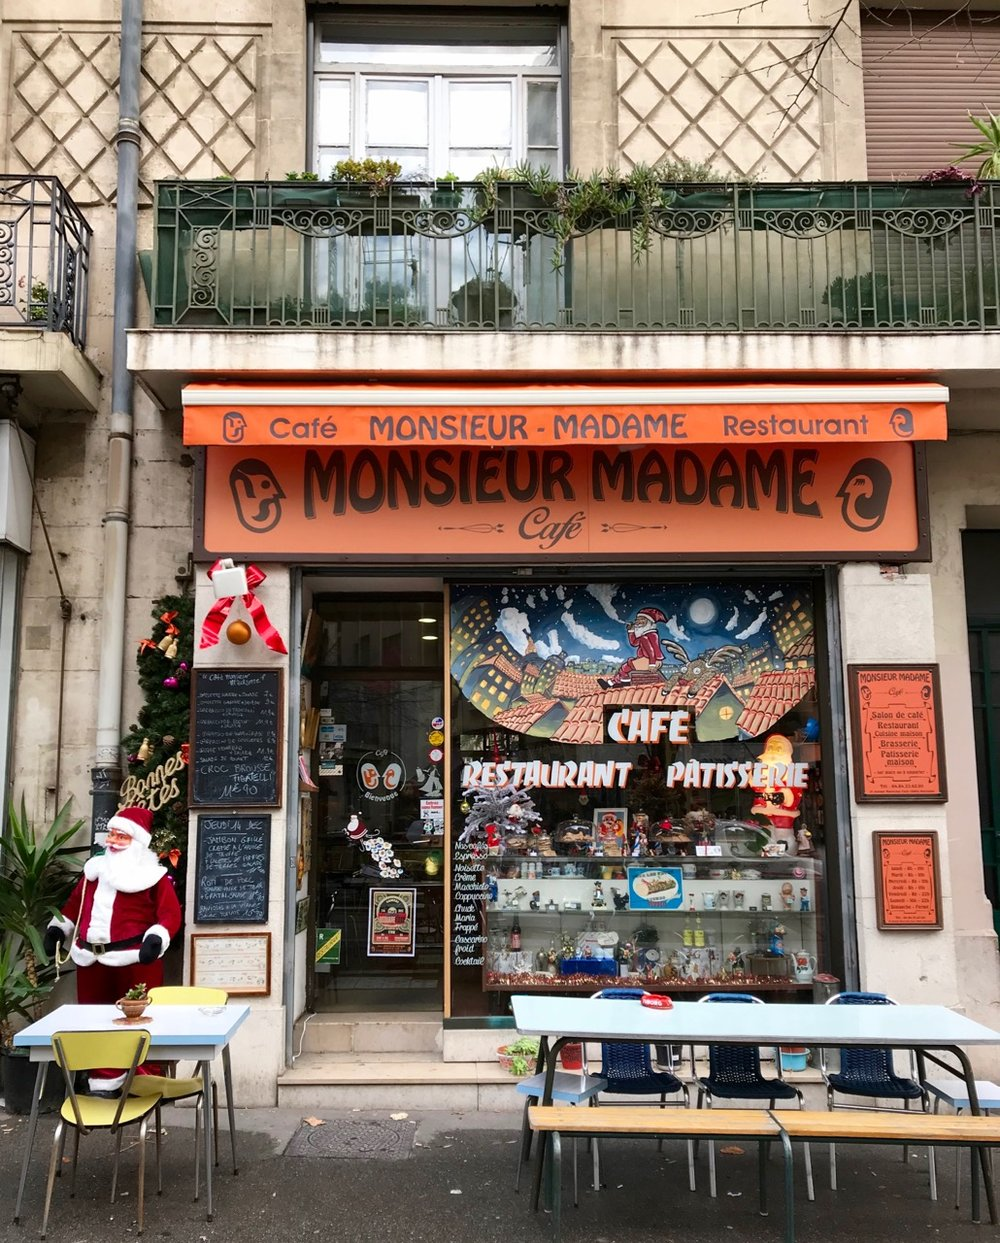 marseille-monsieur-madame-cafe